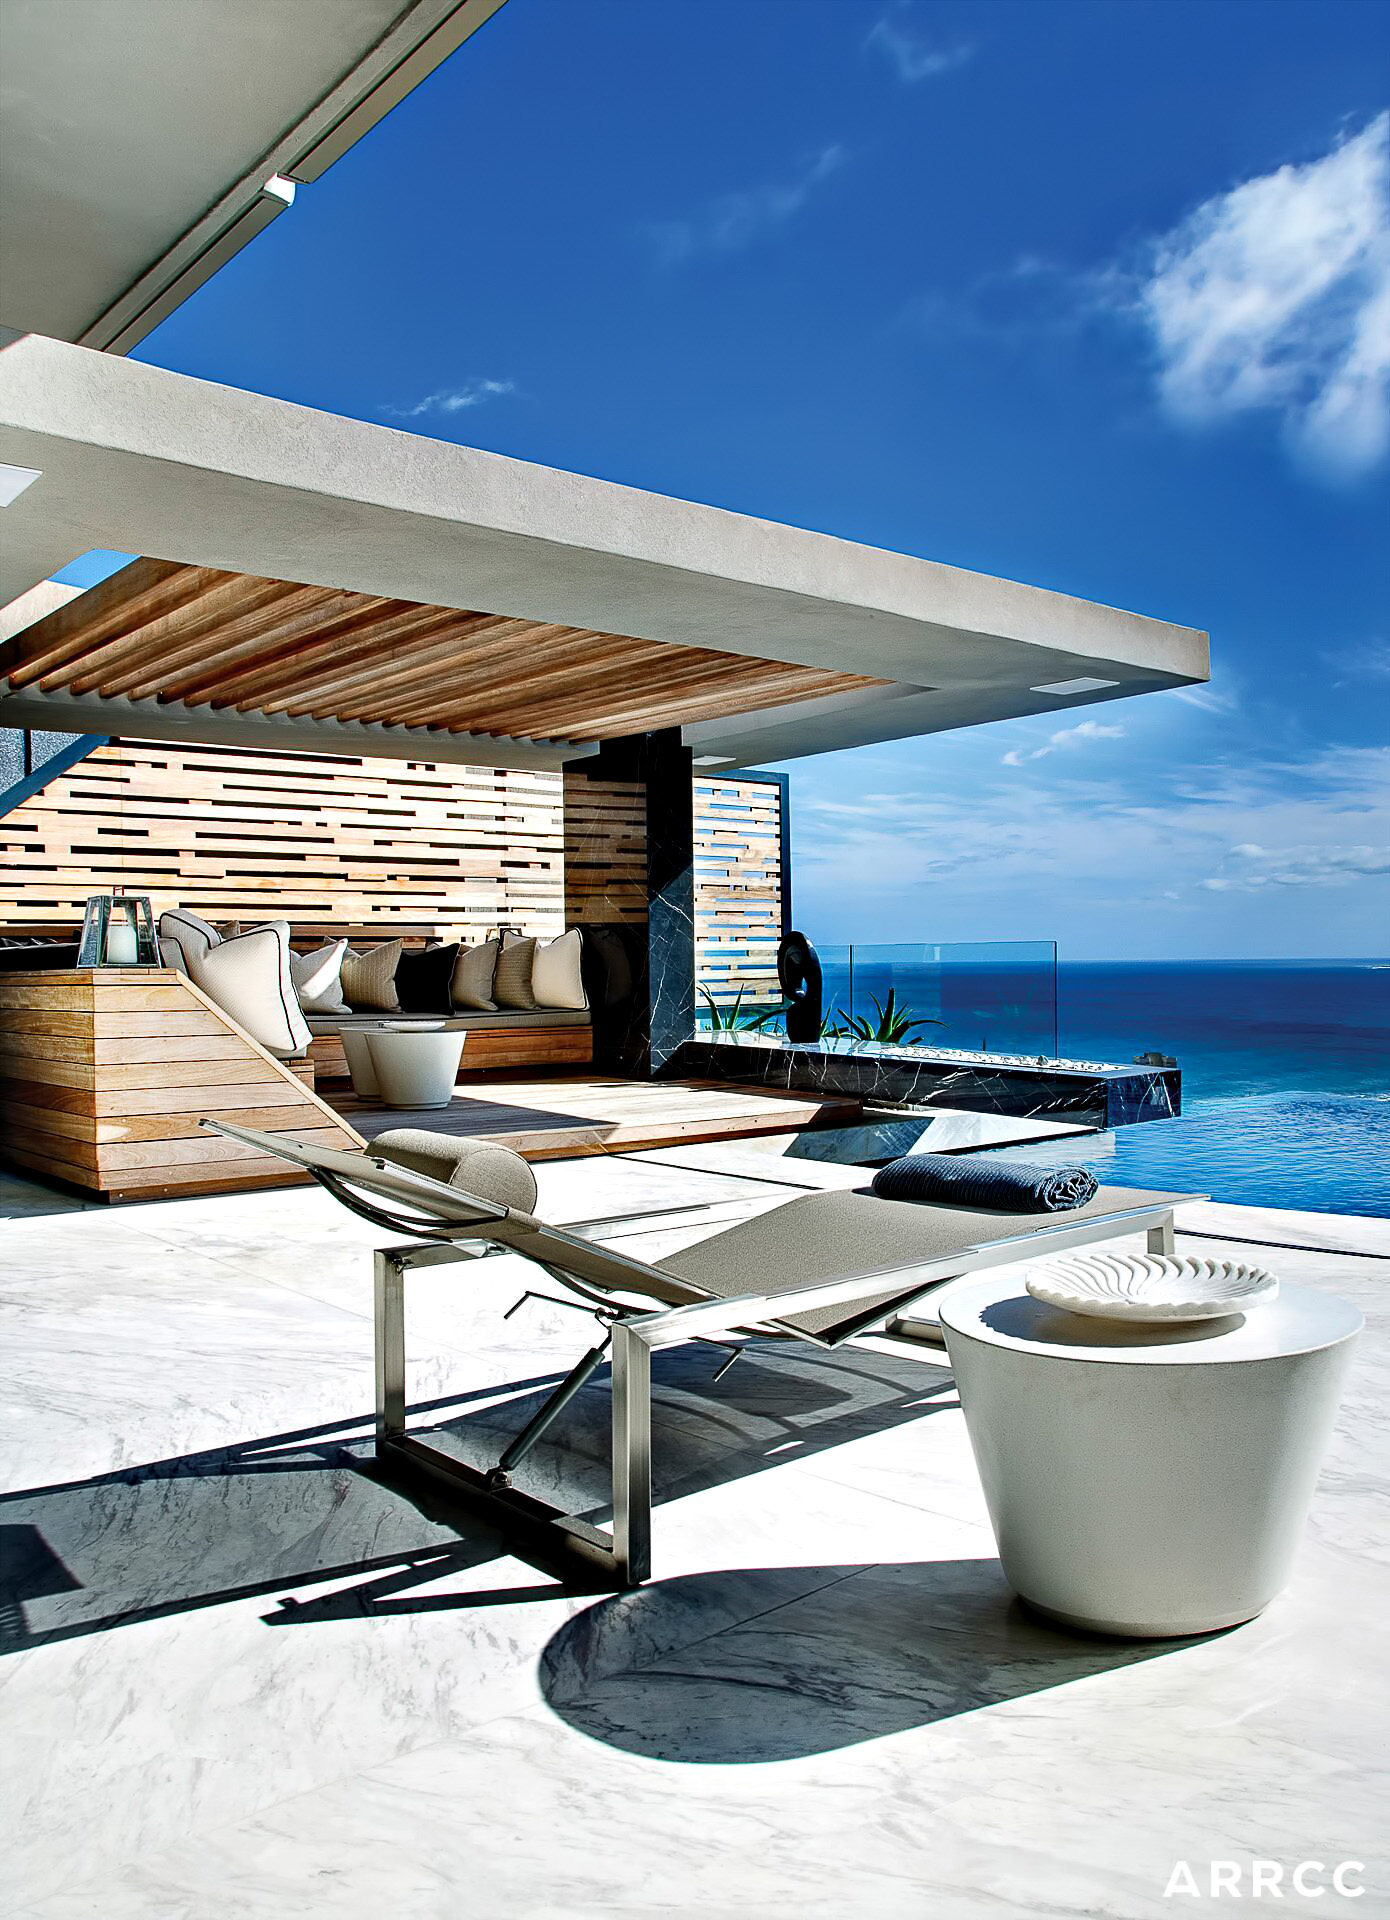 Head Road 1843 - Fresnaye, Cape Town, Western Cape, South Africa